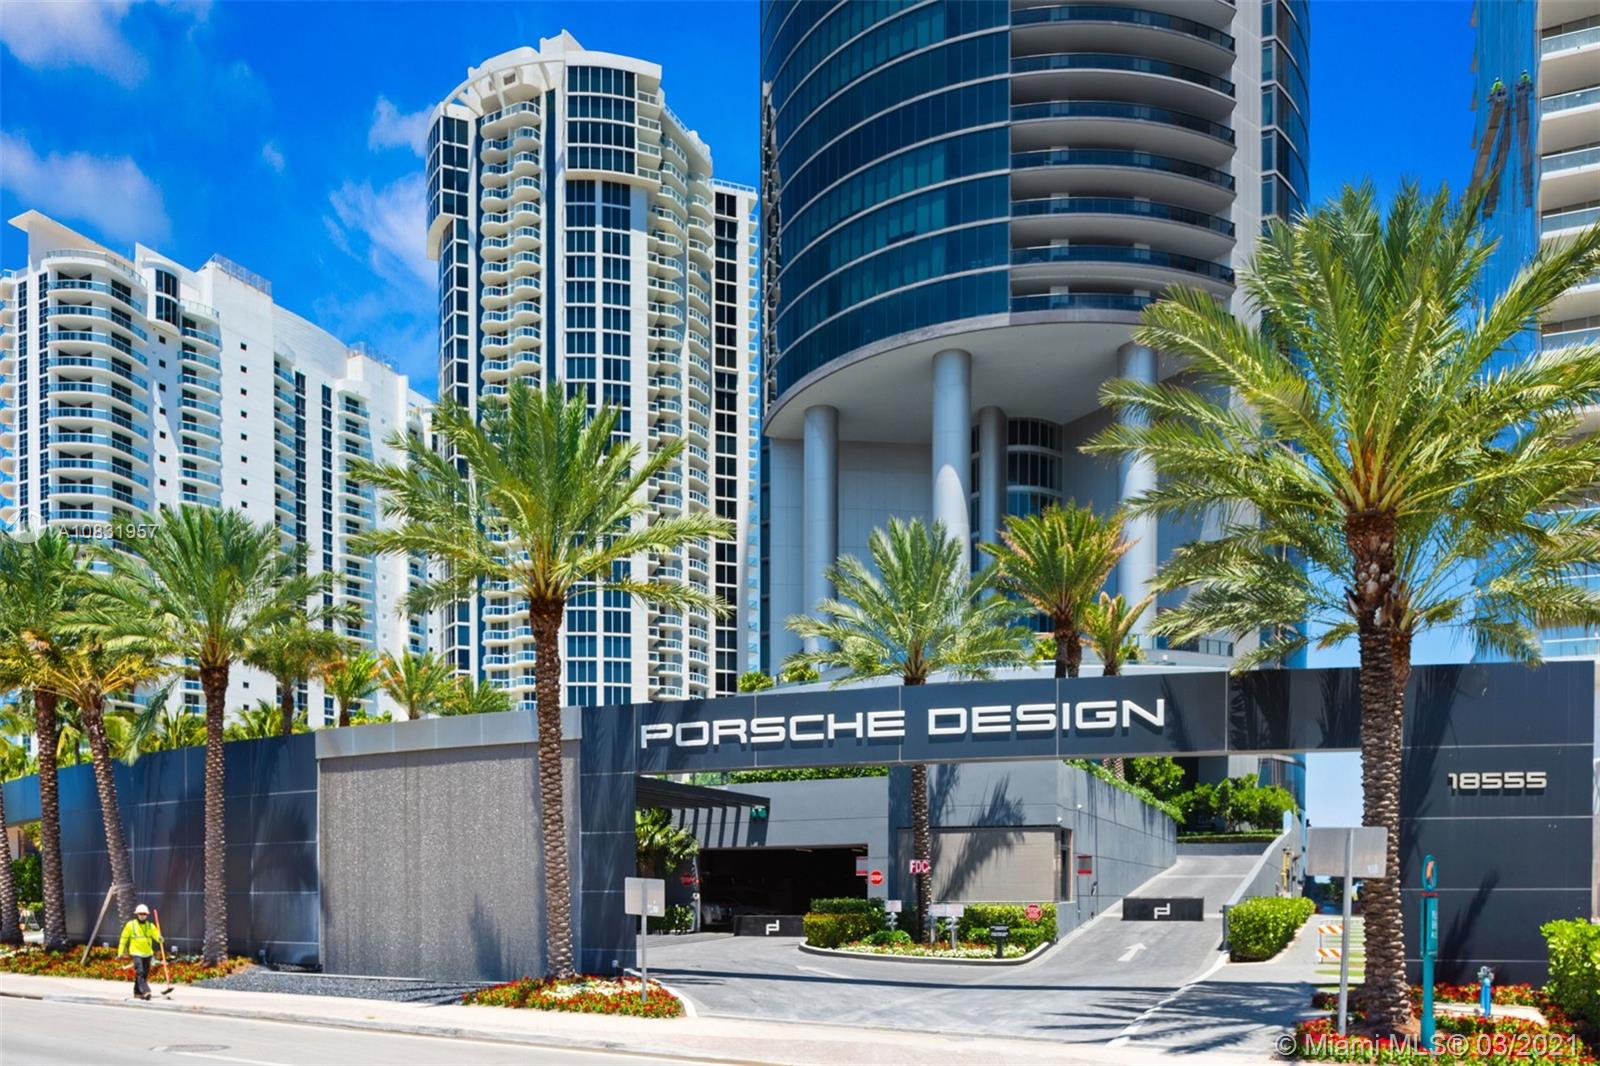 Details for 18555 Collins Ave  905, Sunny Isles Beach, FL 33160